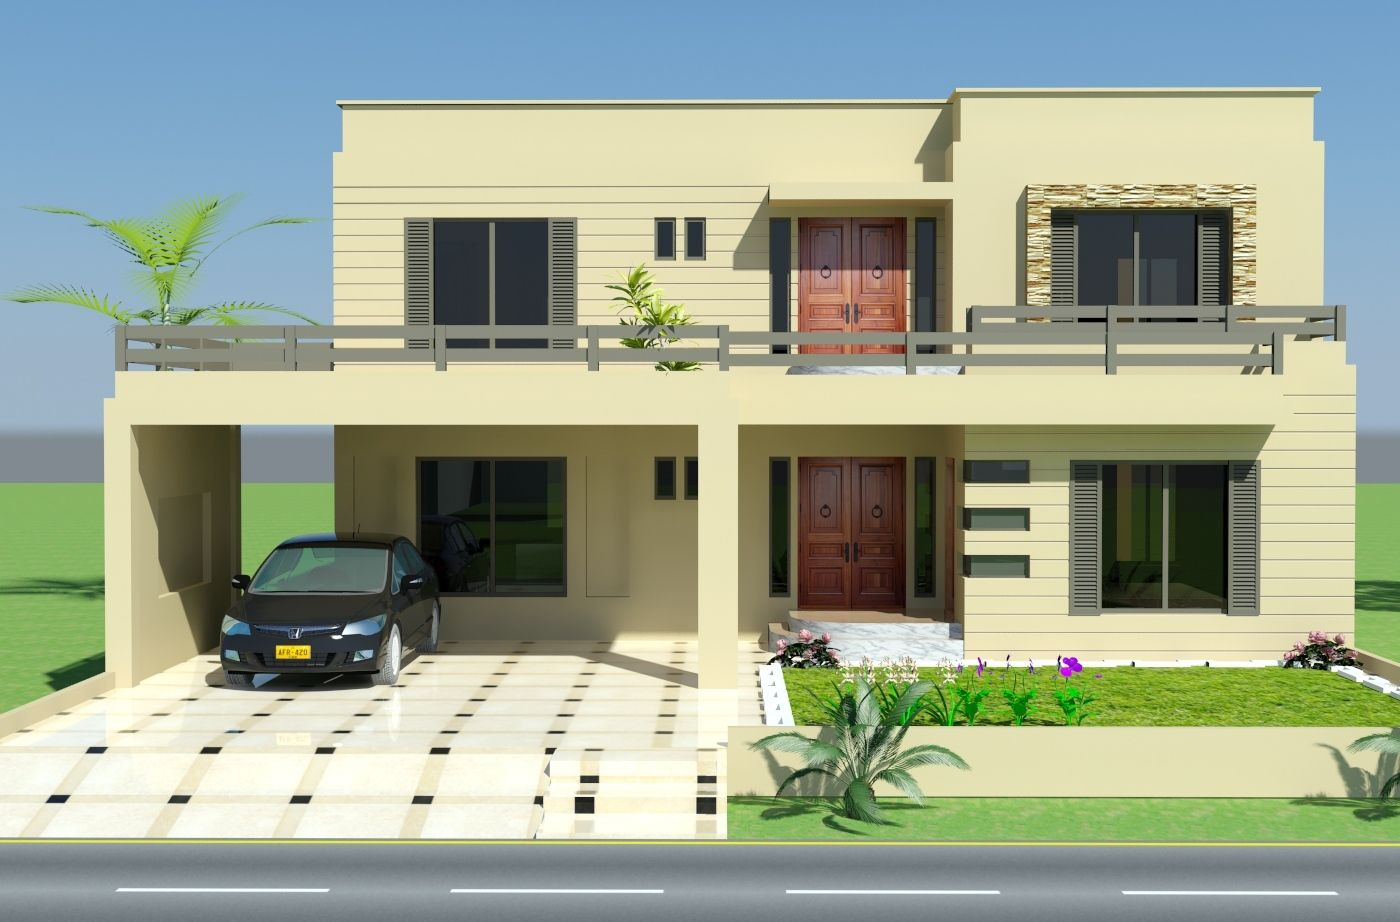 Exterior house design front elevation mi futura casa for Building front design